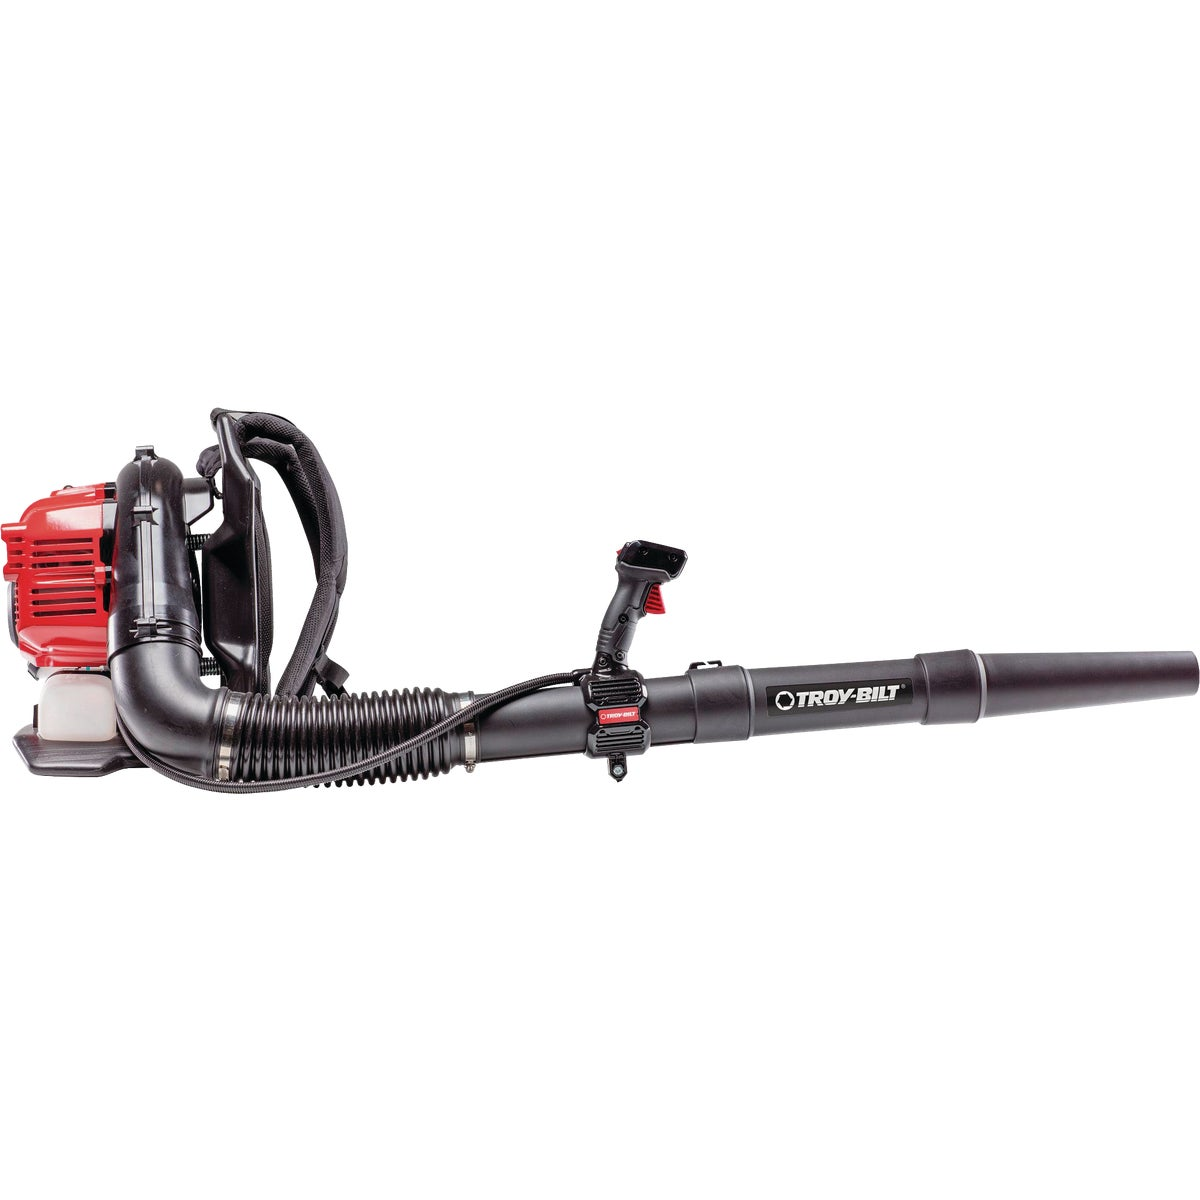 27CC GAS BACKPACK BLOWER - 41AR2BEG766 by M T D Southwest Inc